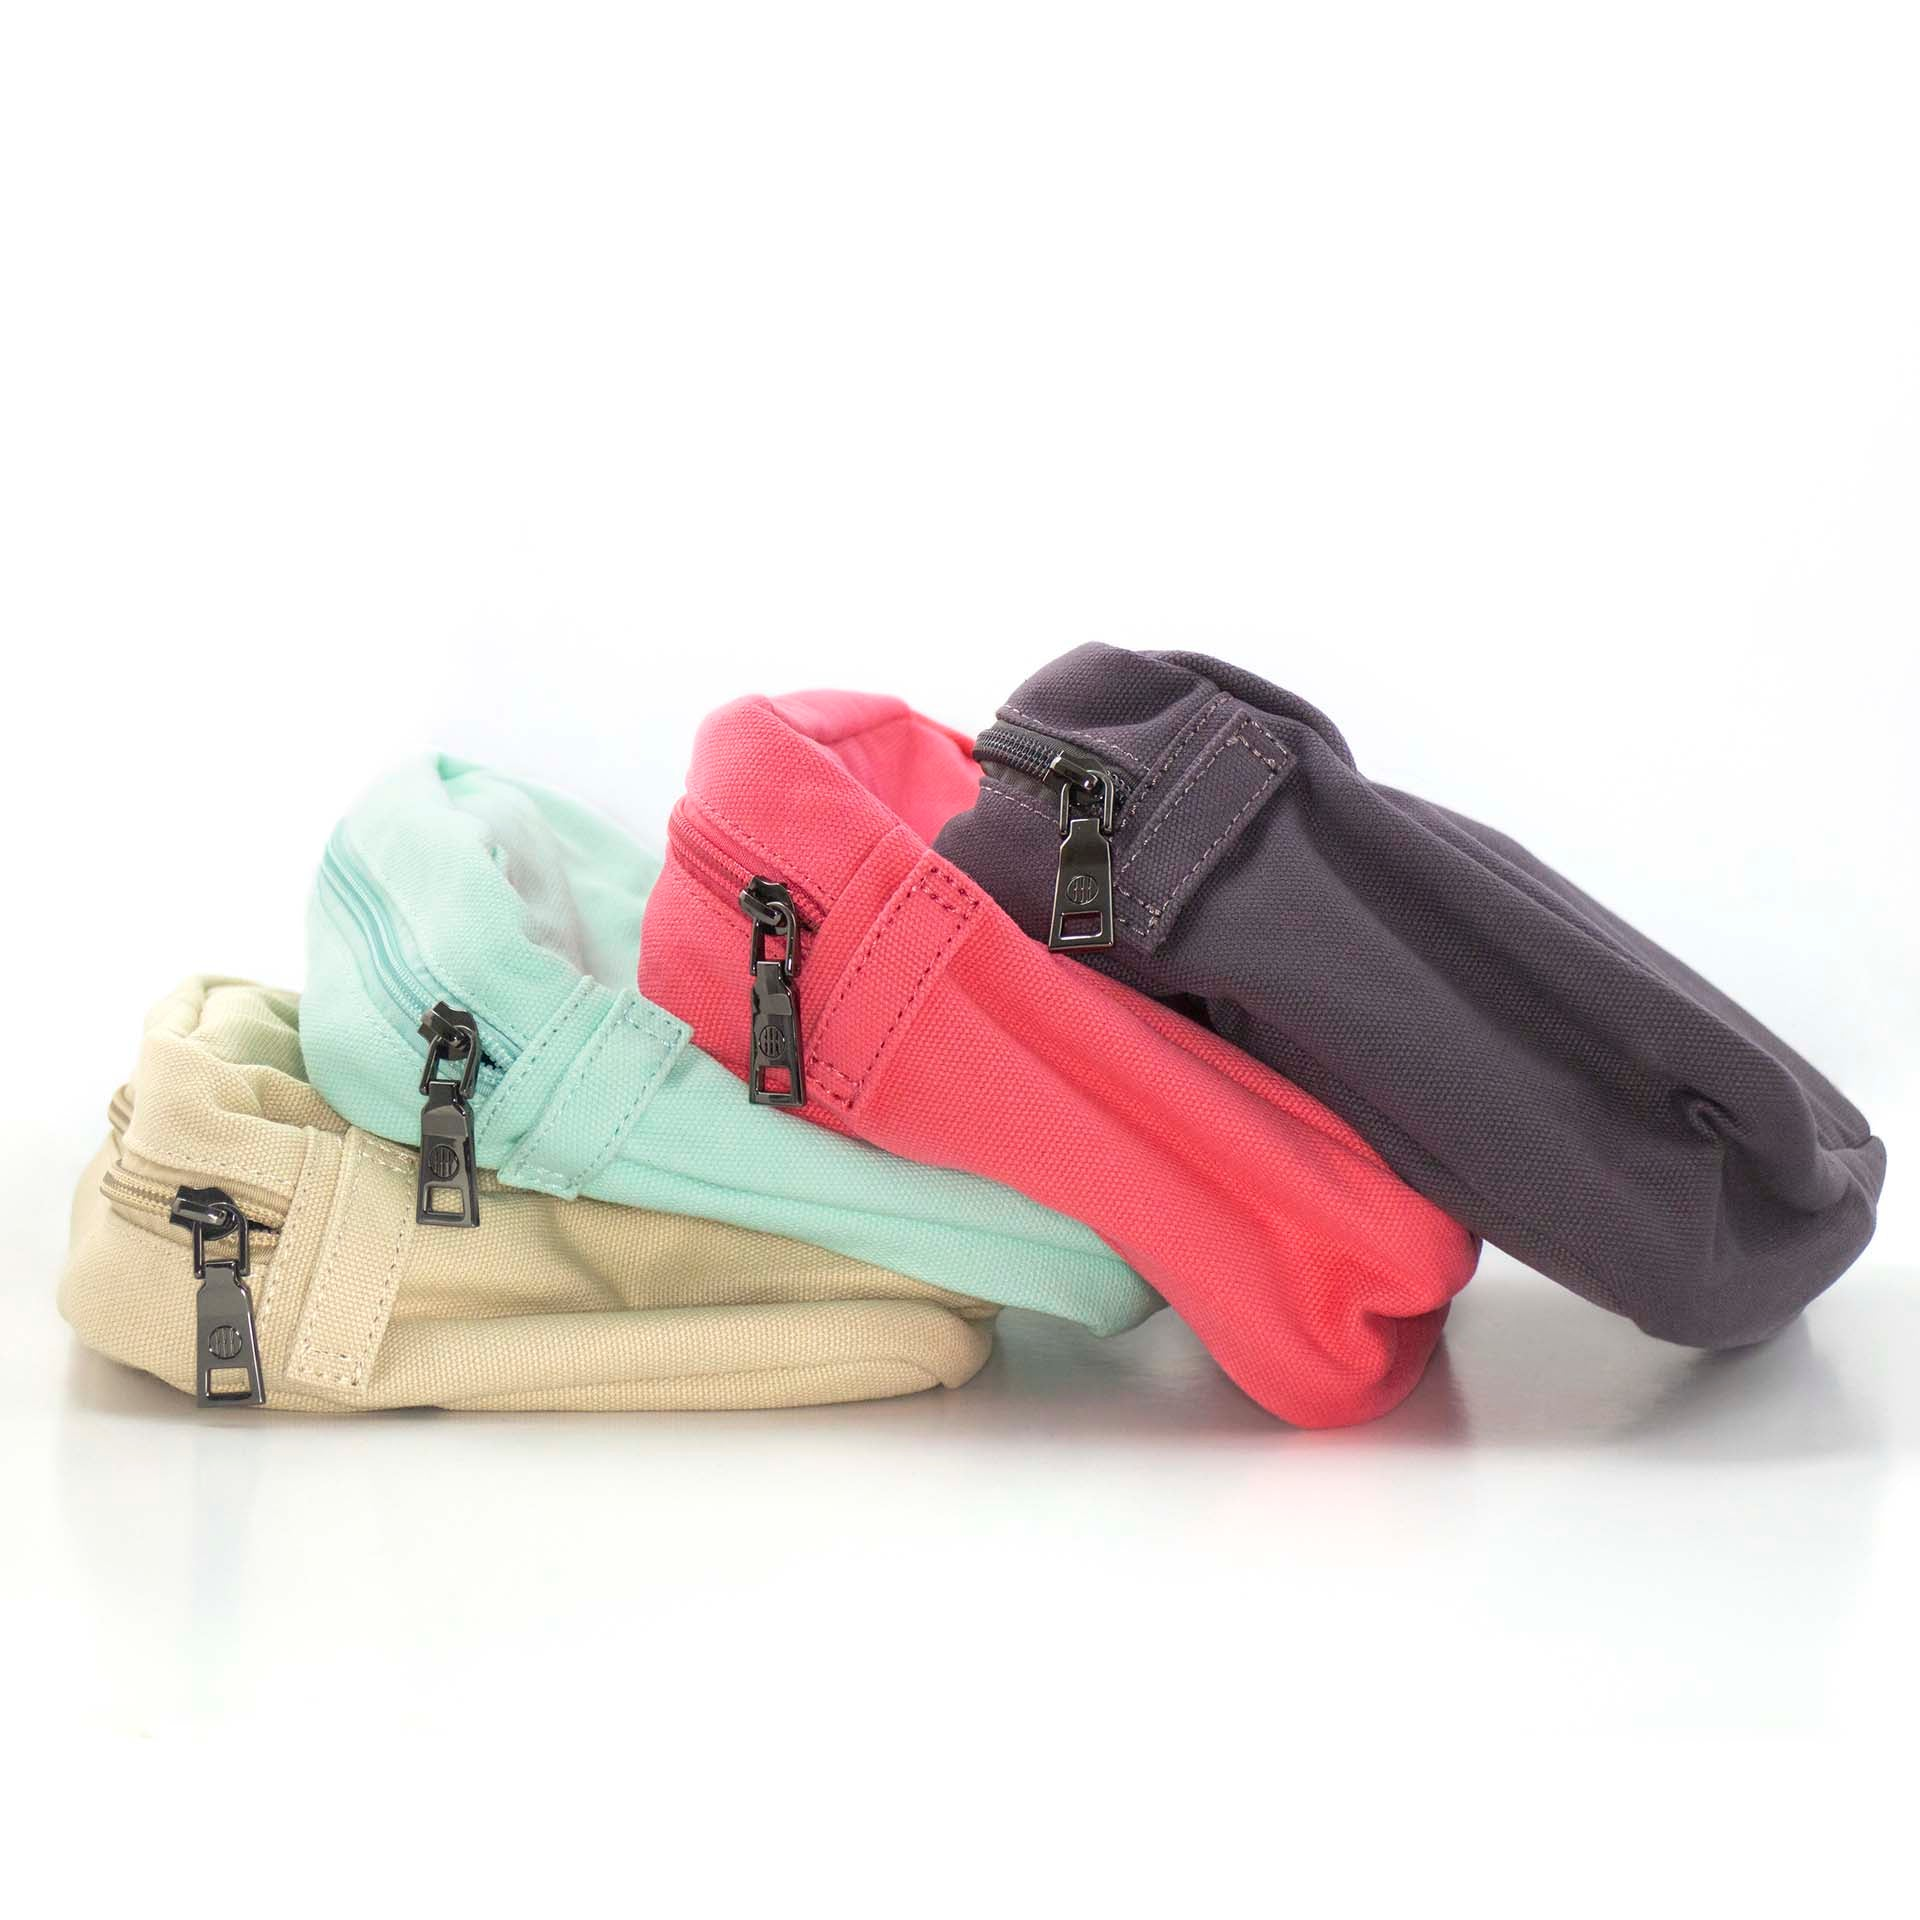 Four canvas bags, or pouches, with a zipper closure on the top. From left to right, the bags are shown in the colors beige, mint, coral, and charcoal.